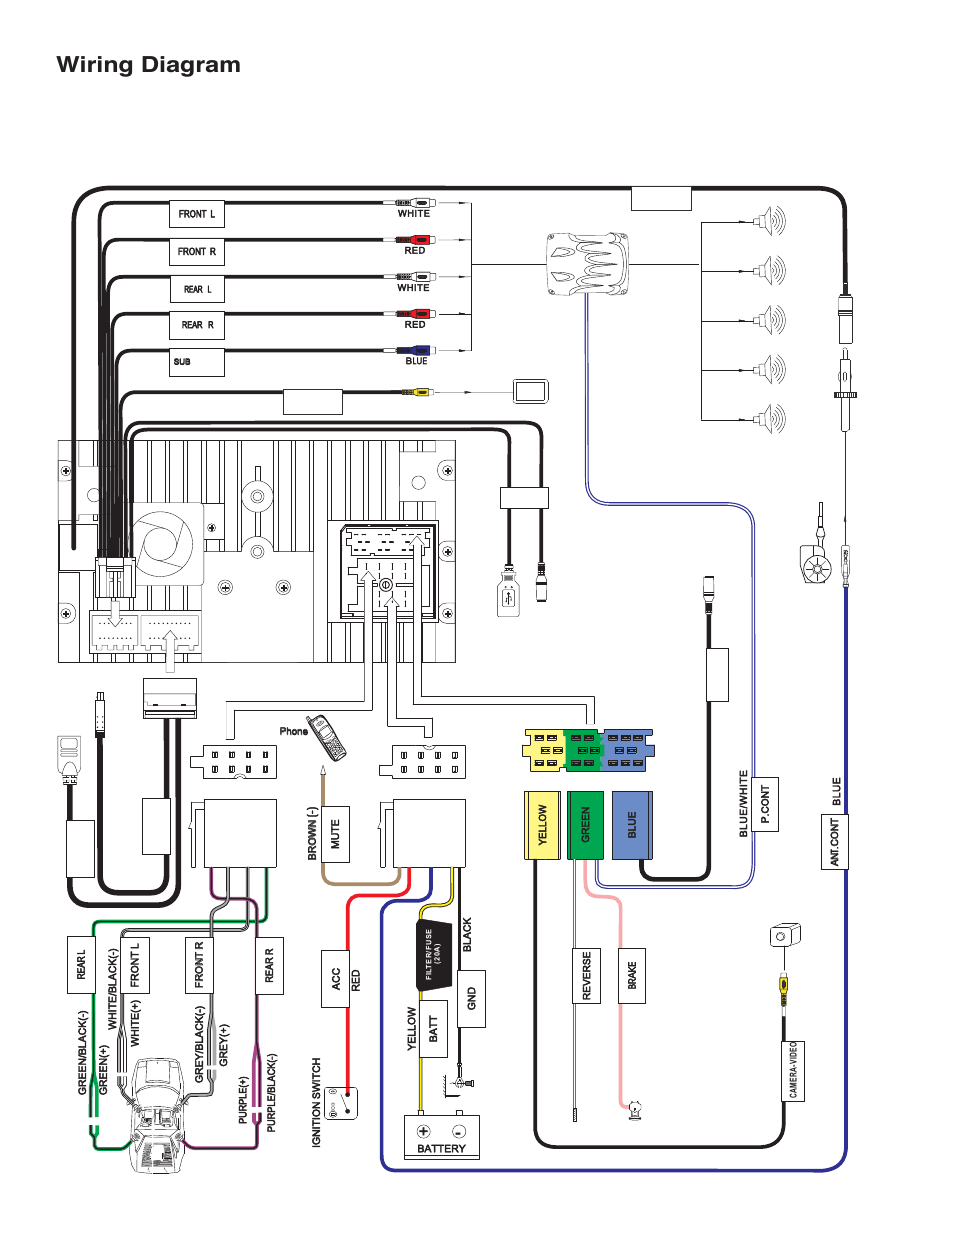 small resolution of viper rpn471t wiring diagram wiring diagrams install viper remote start diagram viper 5002 wiring diagram